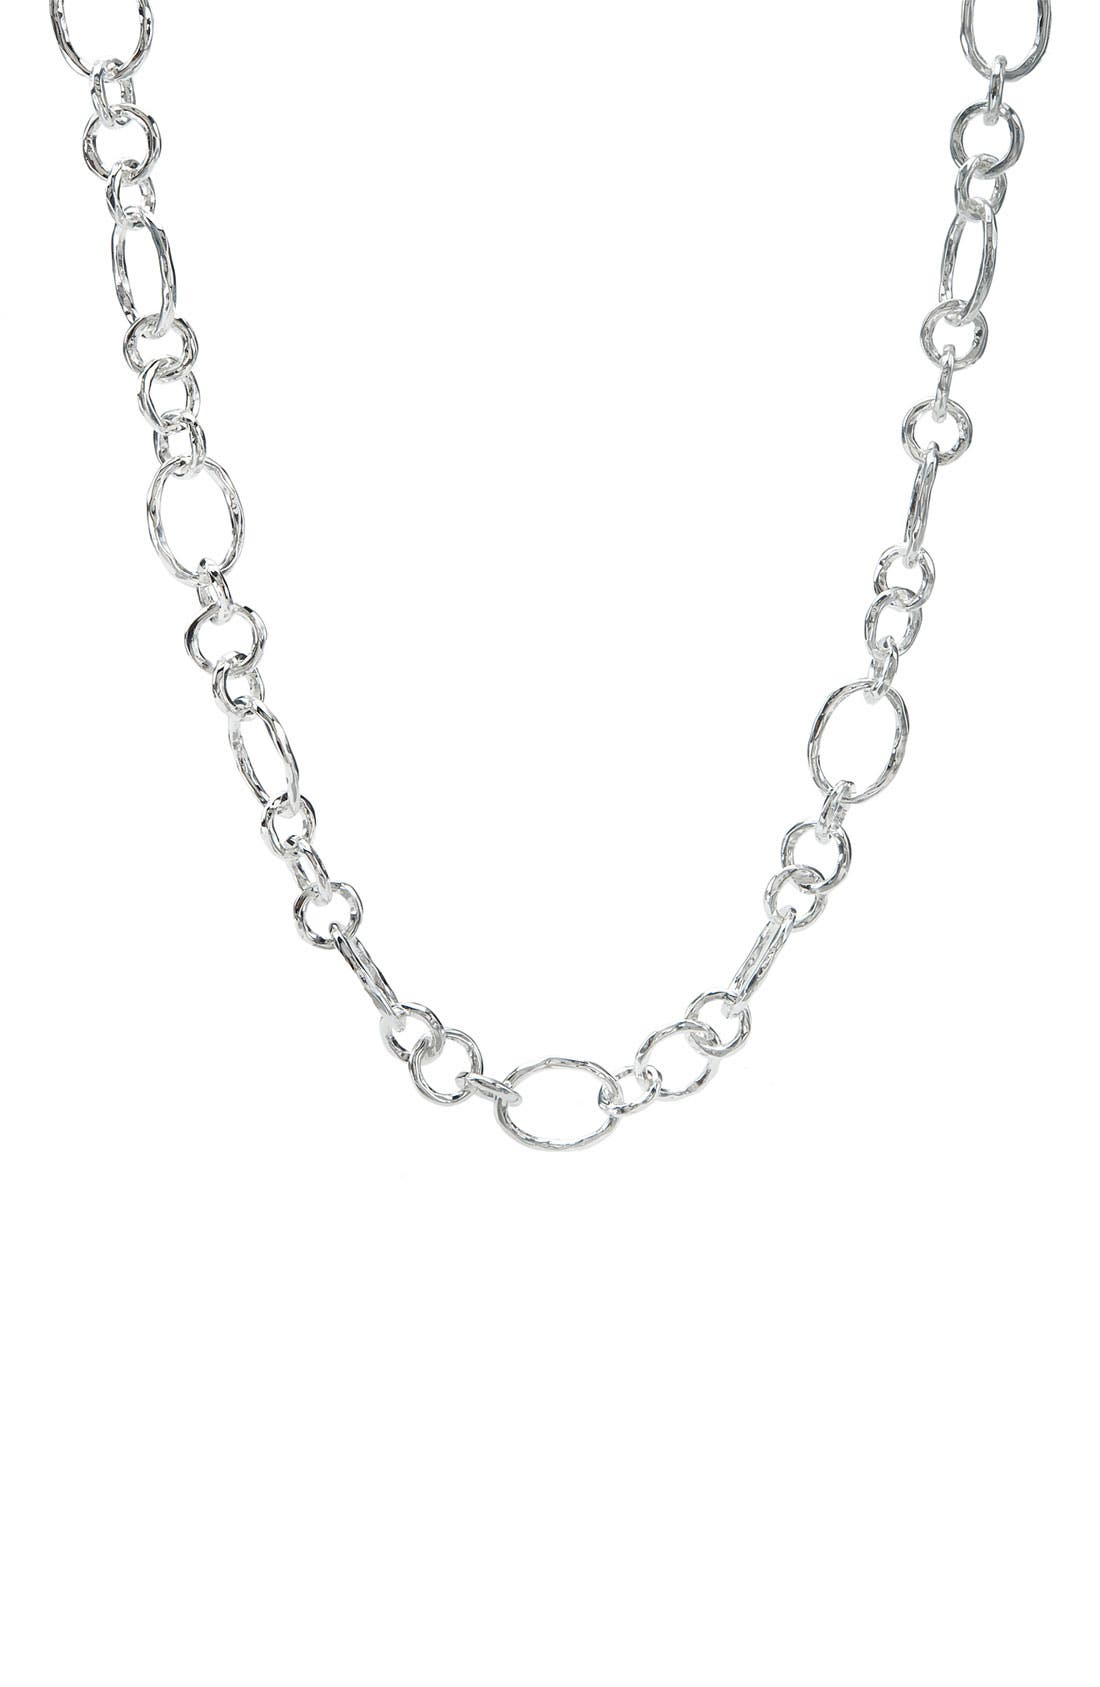 Alternate Image 1 Selected - Ippolita 'Glamazon' Chain Necklace